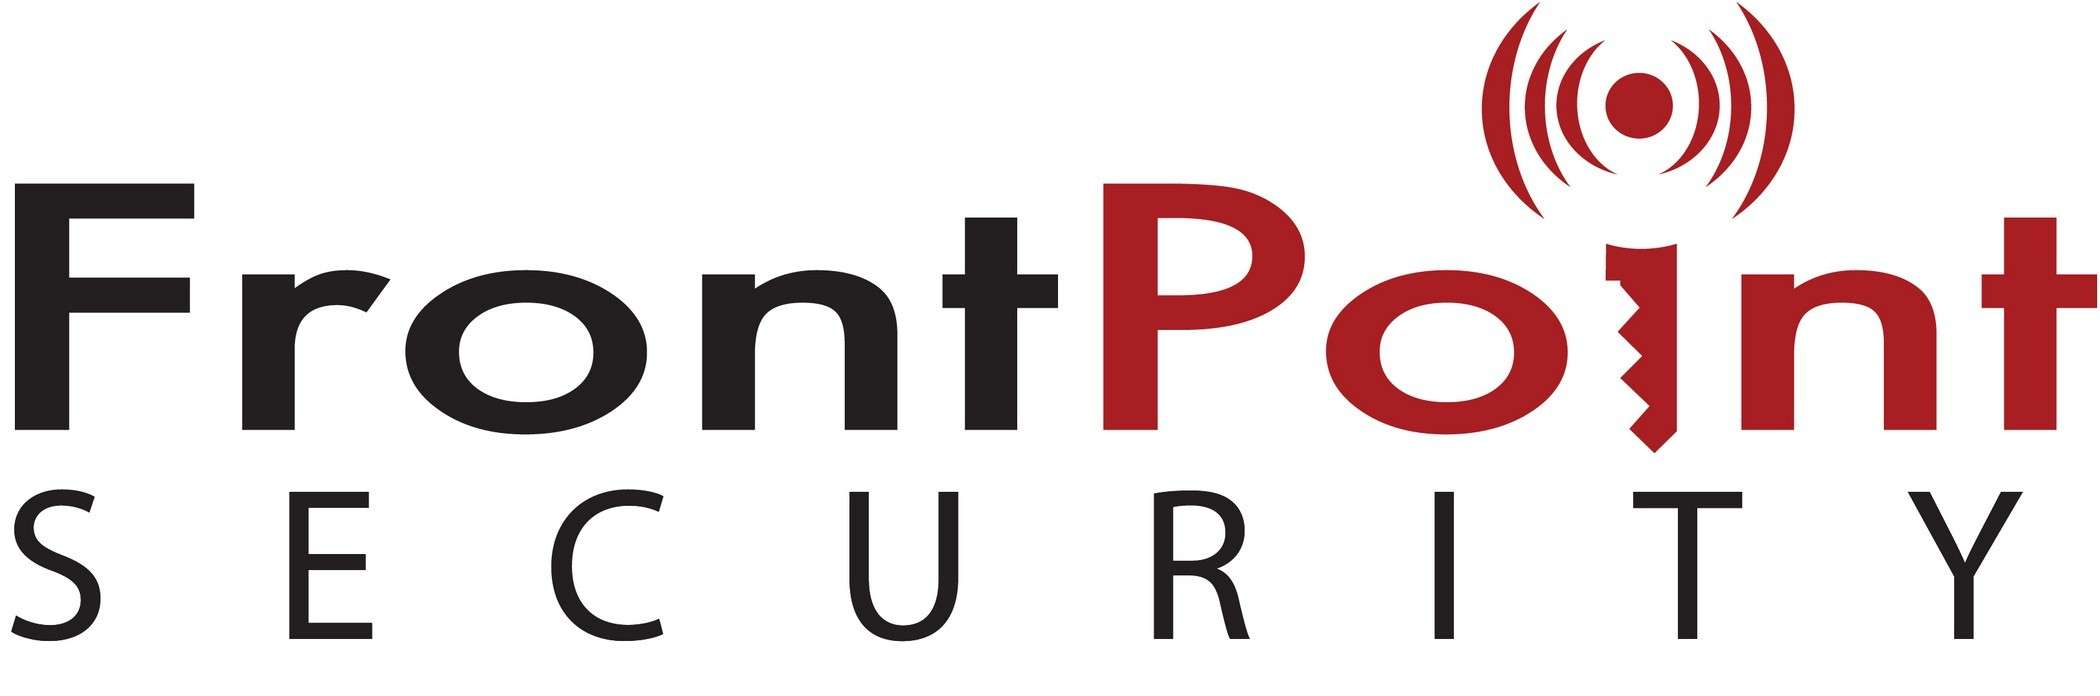 FrontPoint Security Logo [EPS]